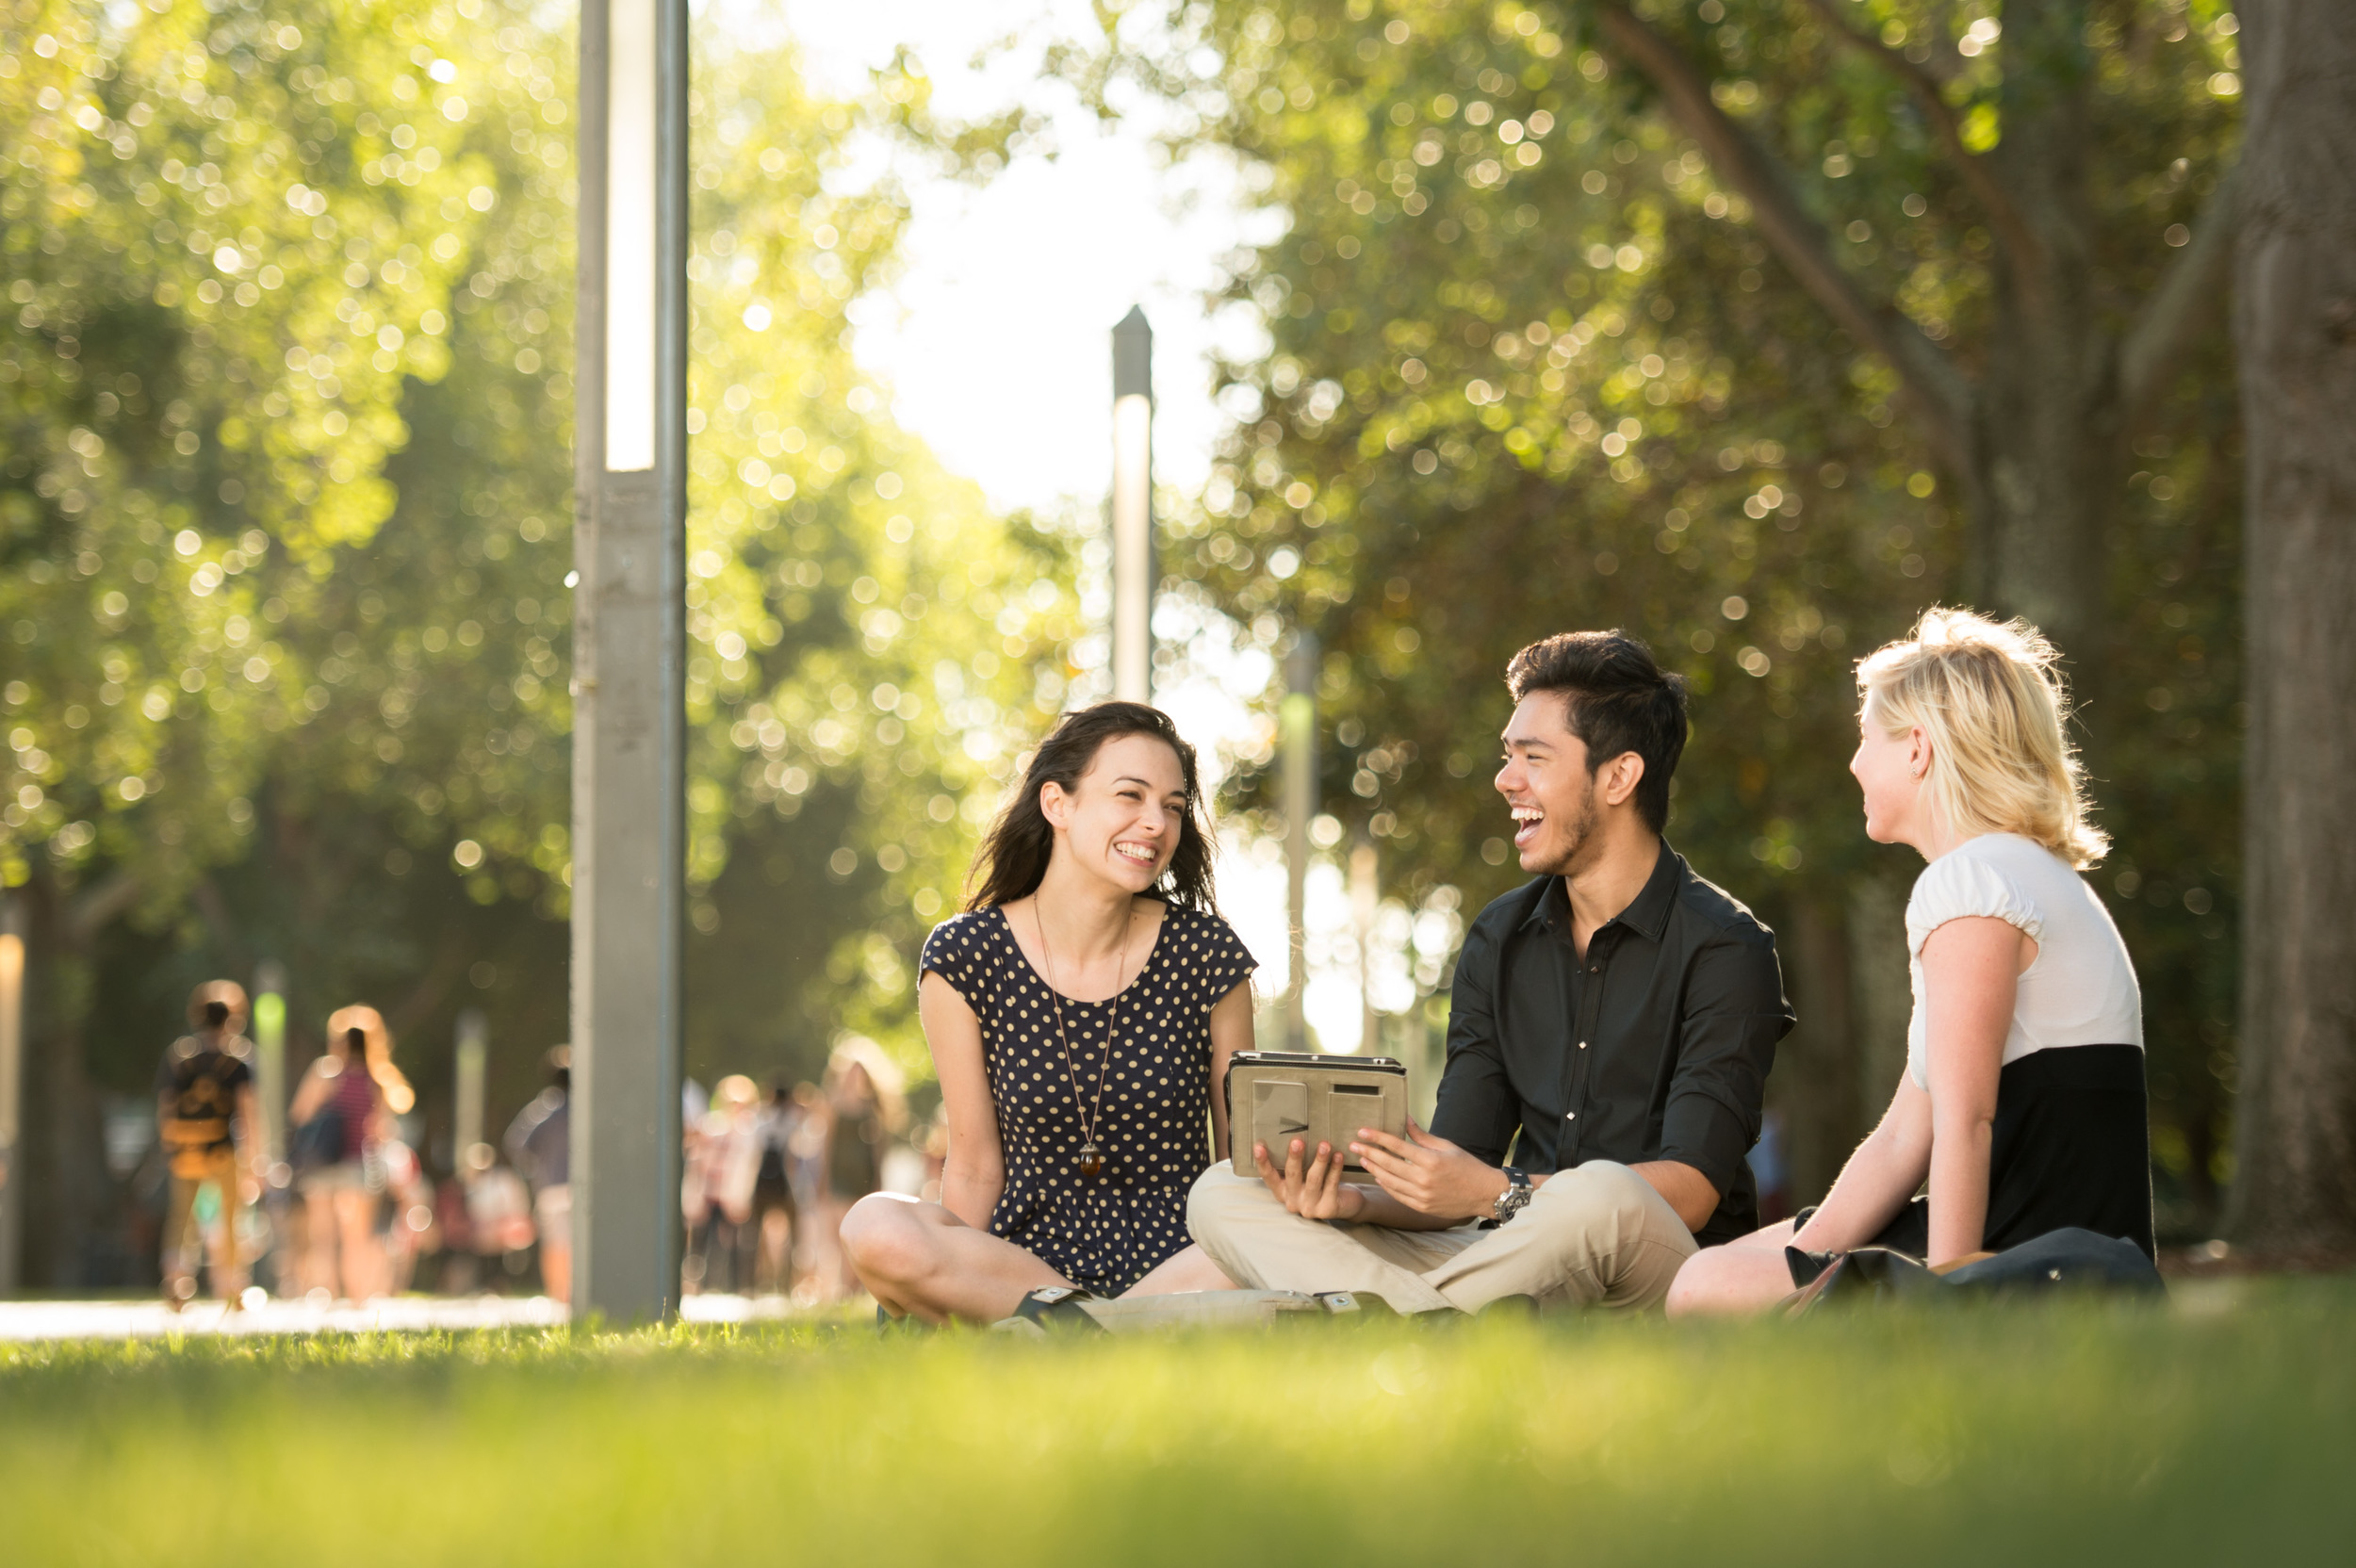 Client: The University of New South Wales